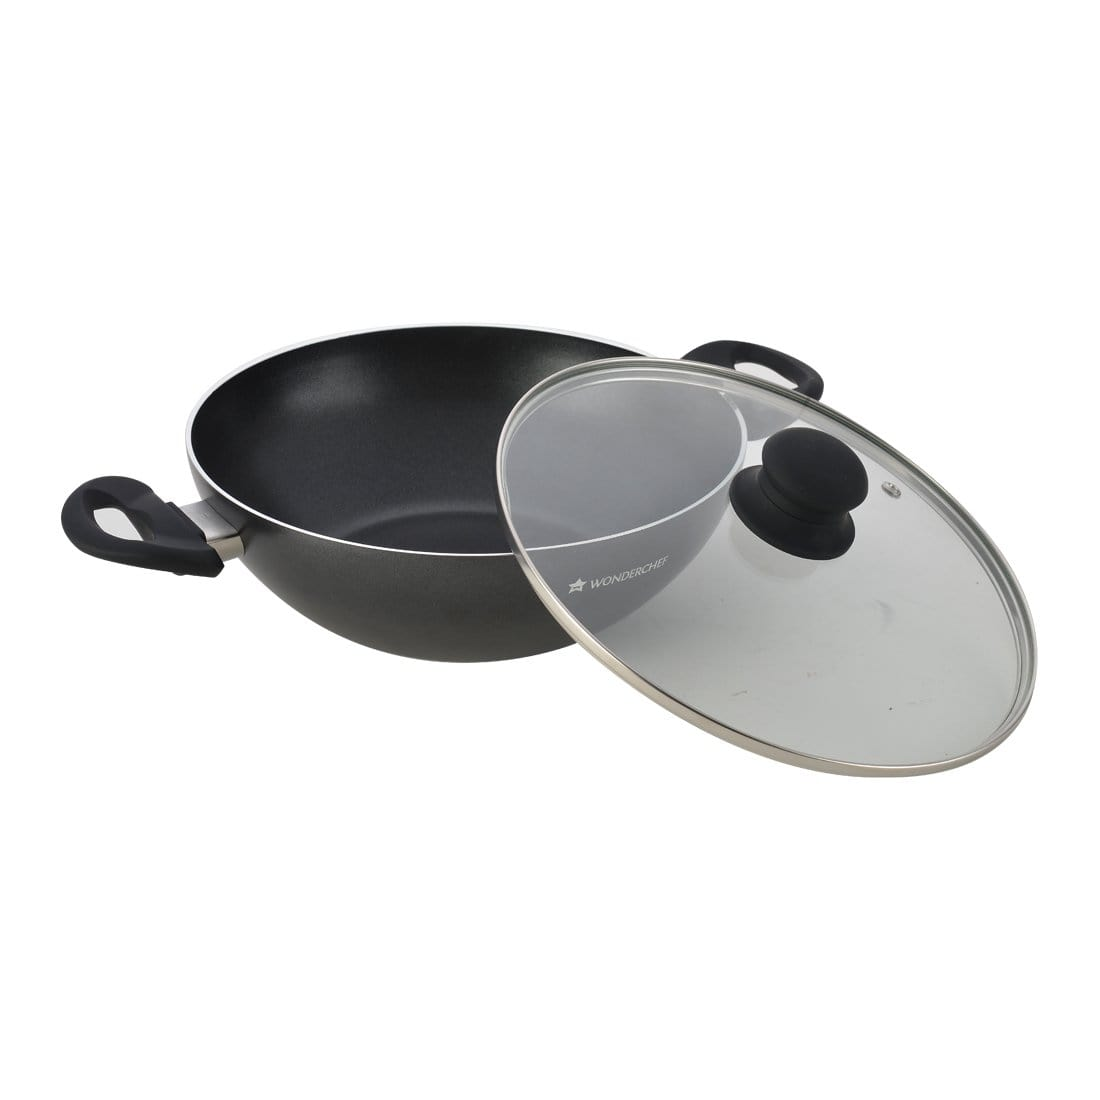 Wonderchef Premia Wok With Lid 24Cm